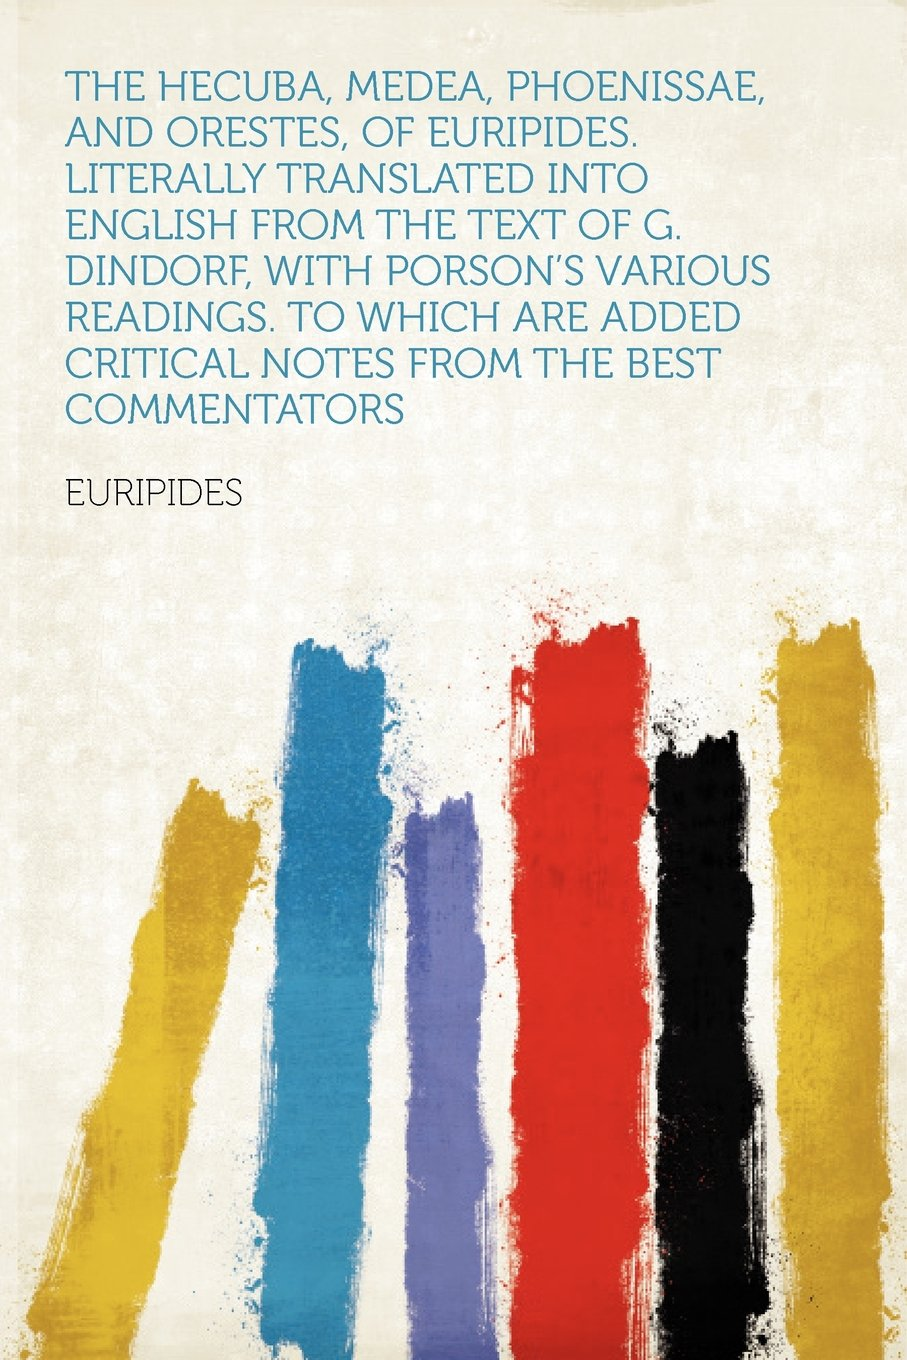 Download The Hecuba, Medea, Phoenissae, and Orestes, of Euripides. Literally Translated Into English From the Text of G. Dindorf, With Porson's Various ... Critical Notes From the Best Commentators pdf epub